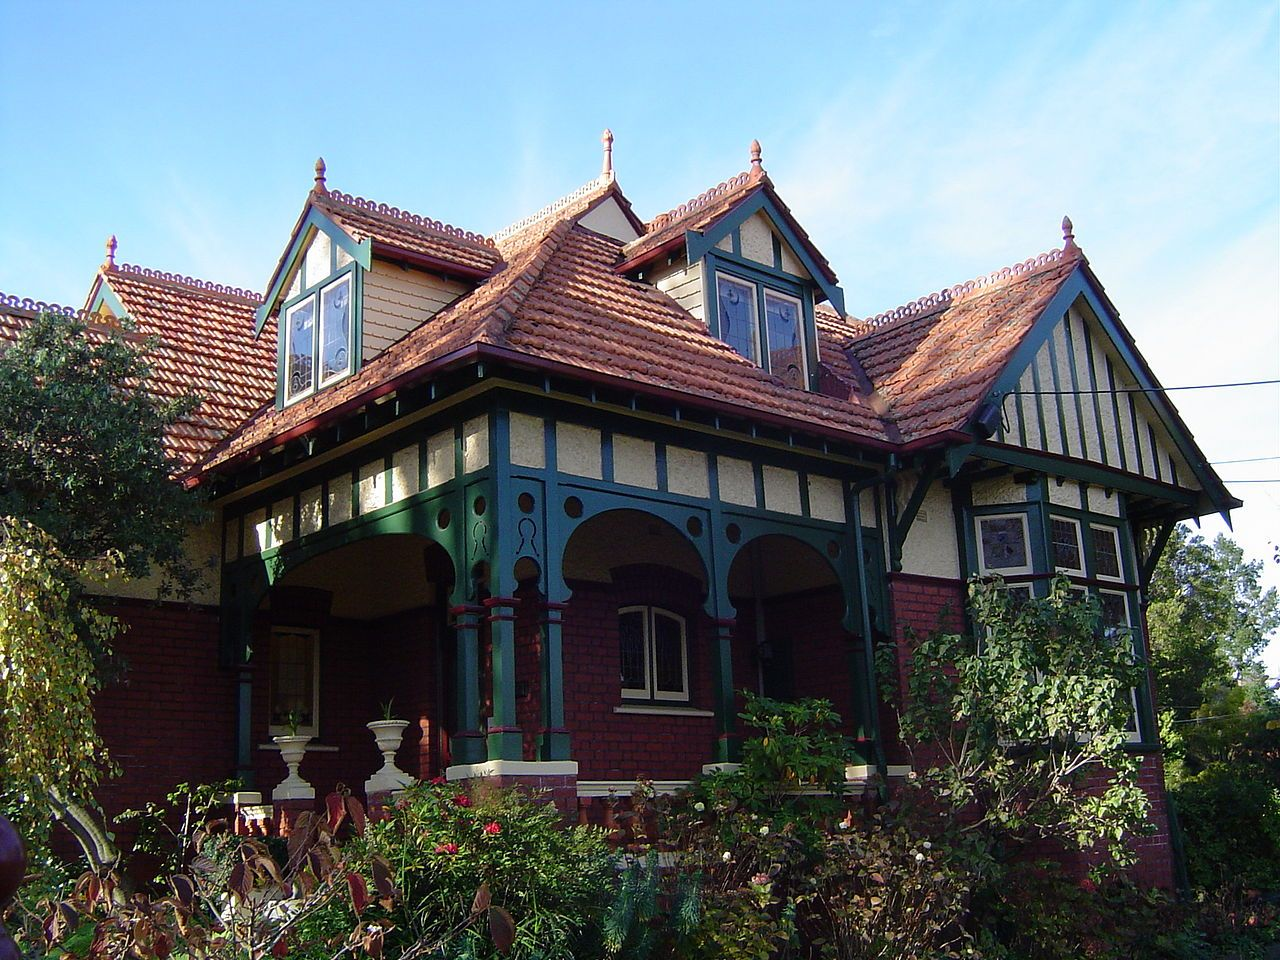 Queen Anne Style House In Ivanhoe Victoria